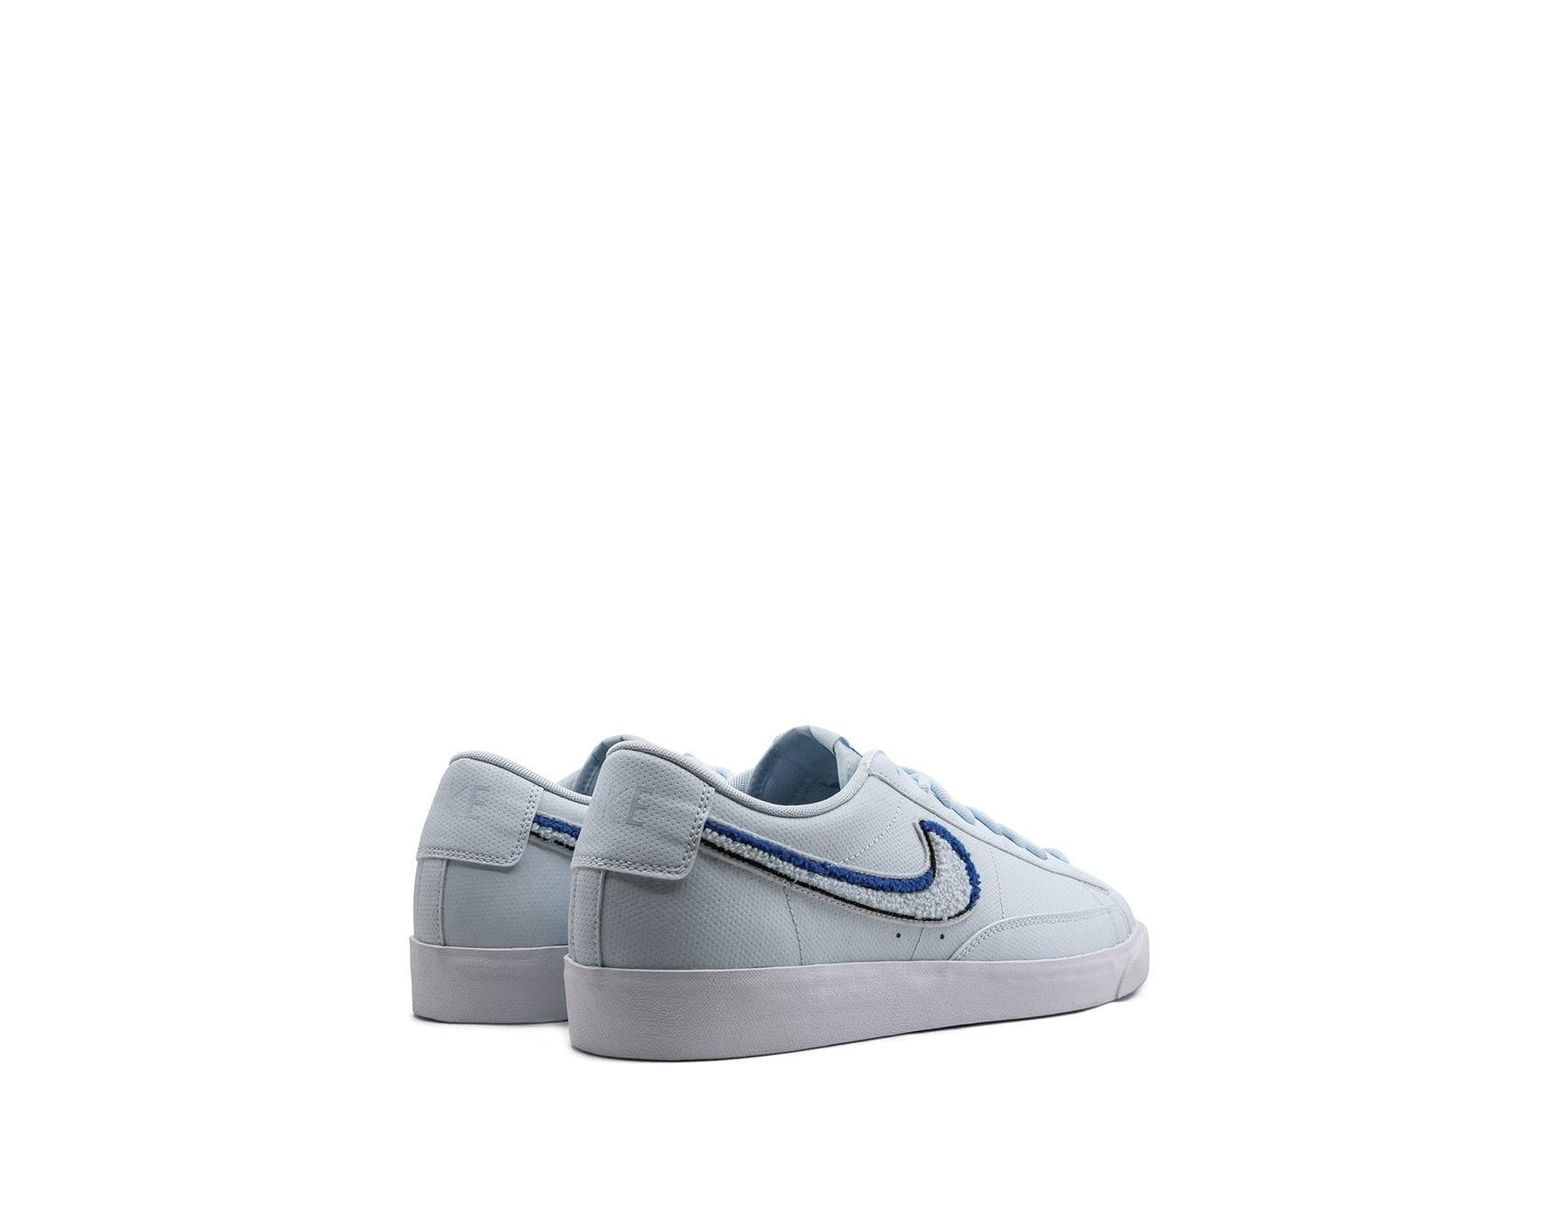 new concept 1c79f 29a79 Nike Blazer Low 3d Sneakers in Blue for Men - Lyst